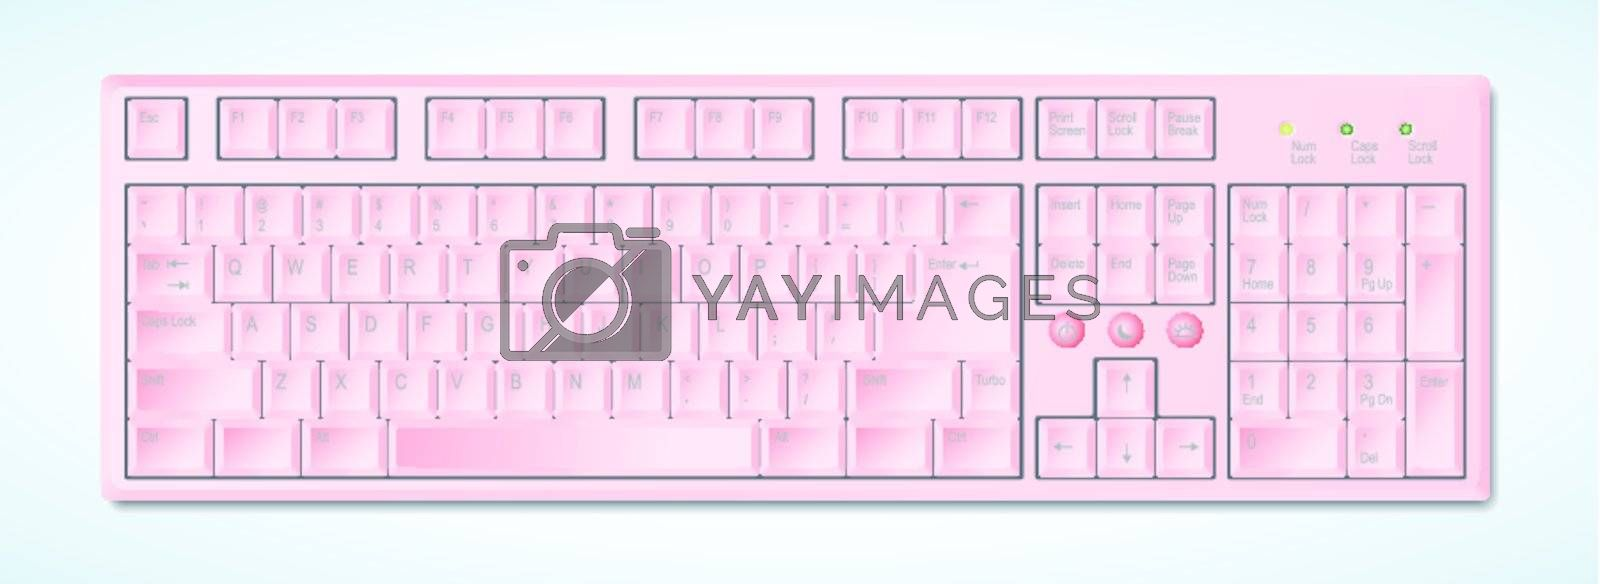 Two different kinds of desktop keyboards in layered vector